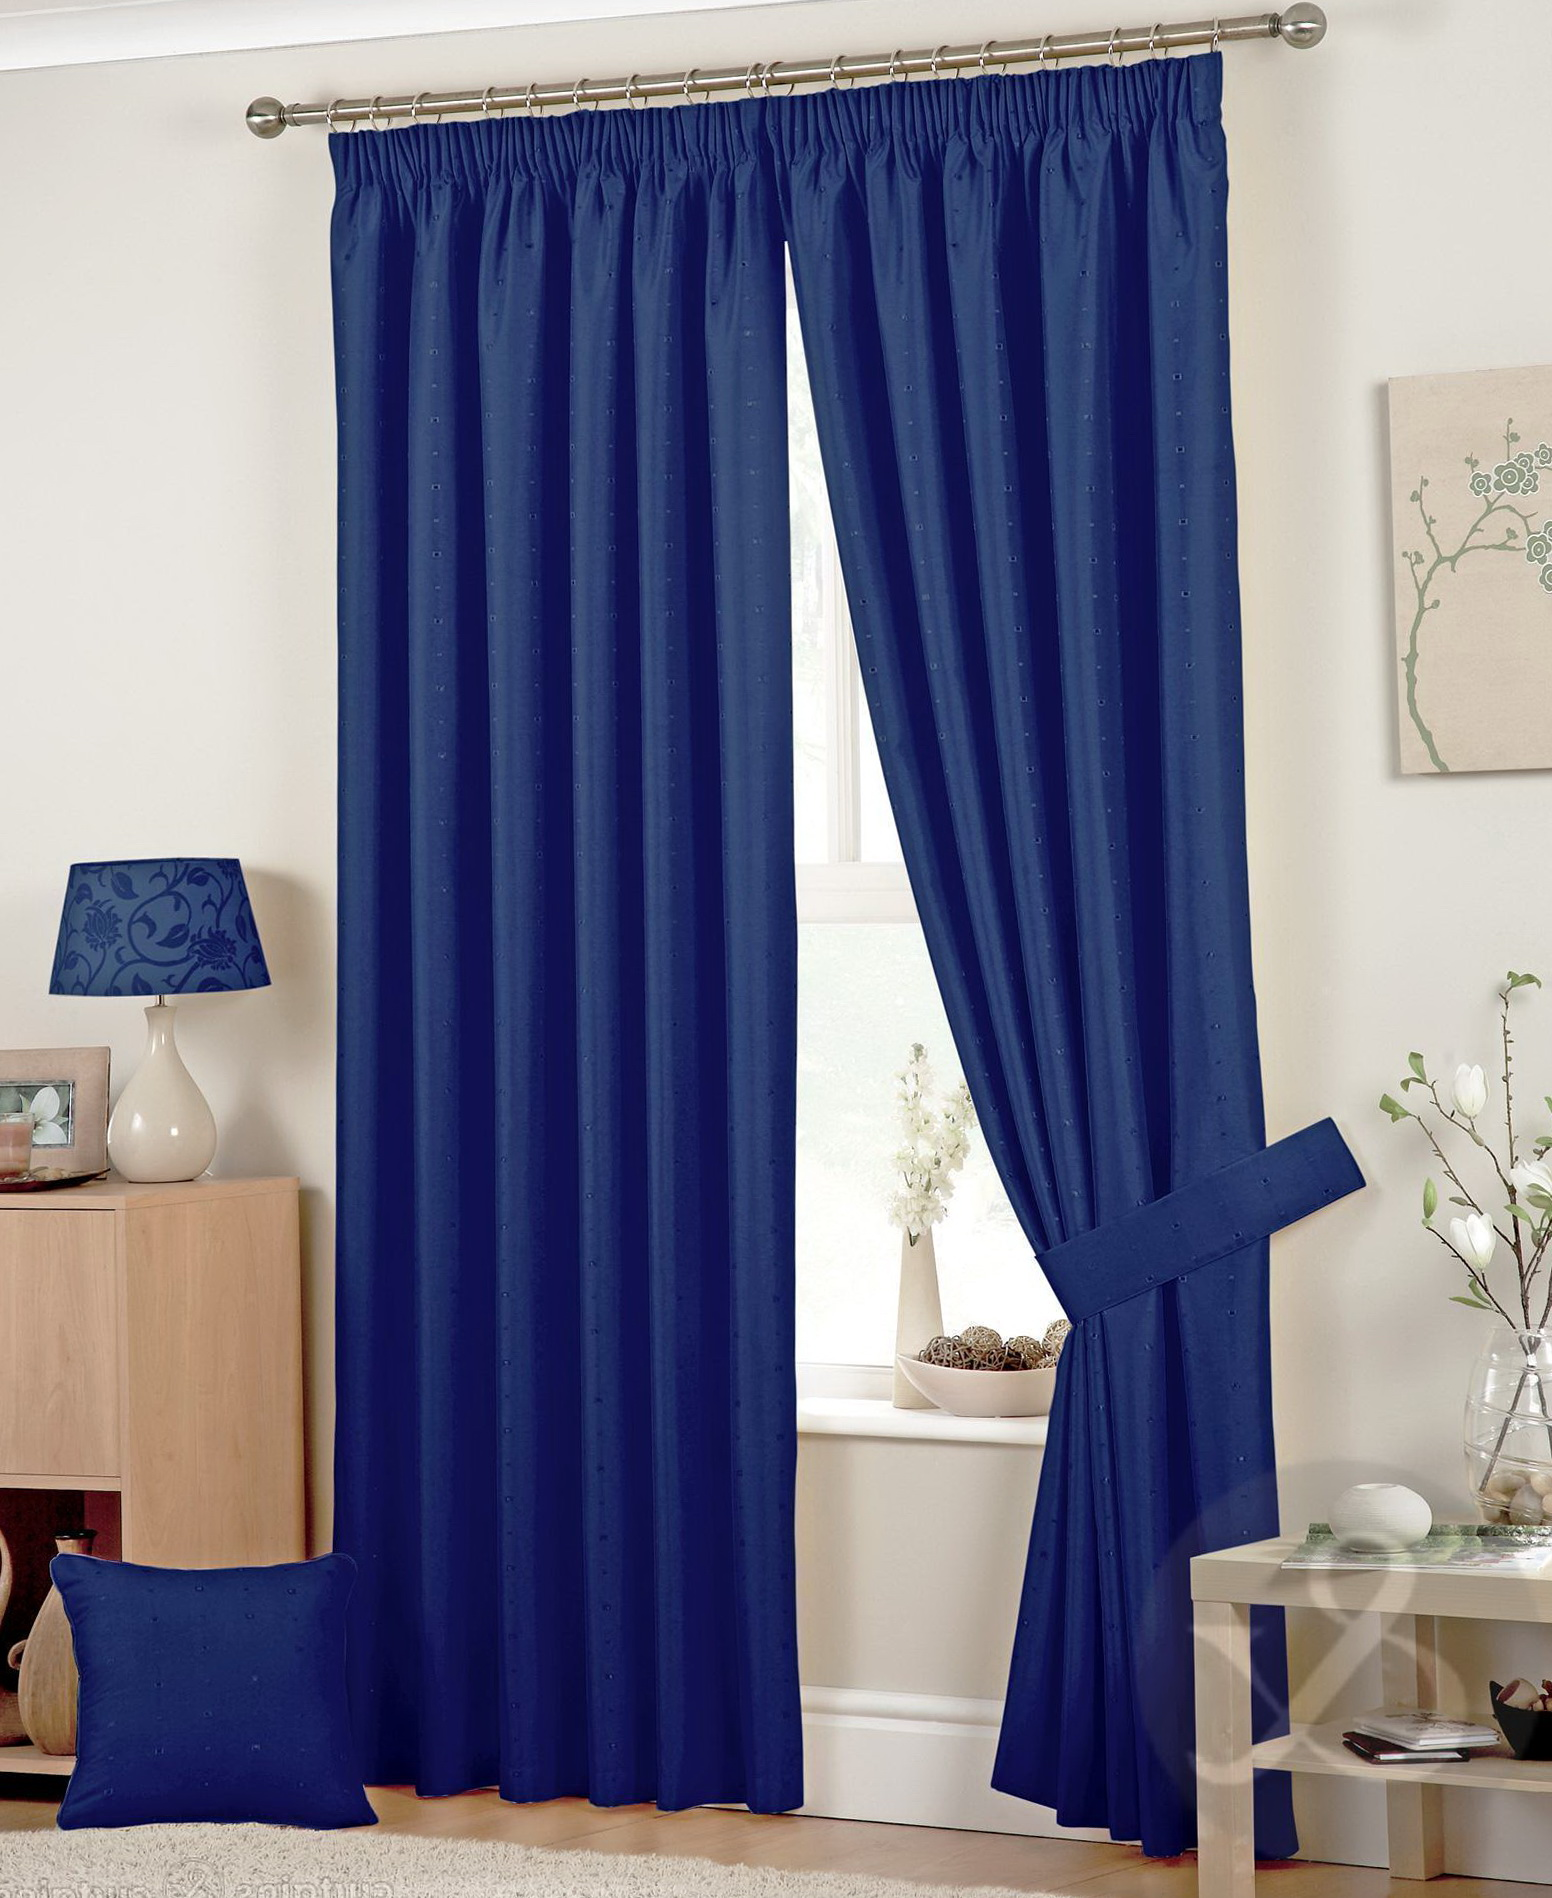 Navy blue window curtains home design ideas for Navy blue curtains ikea